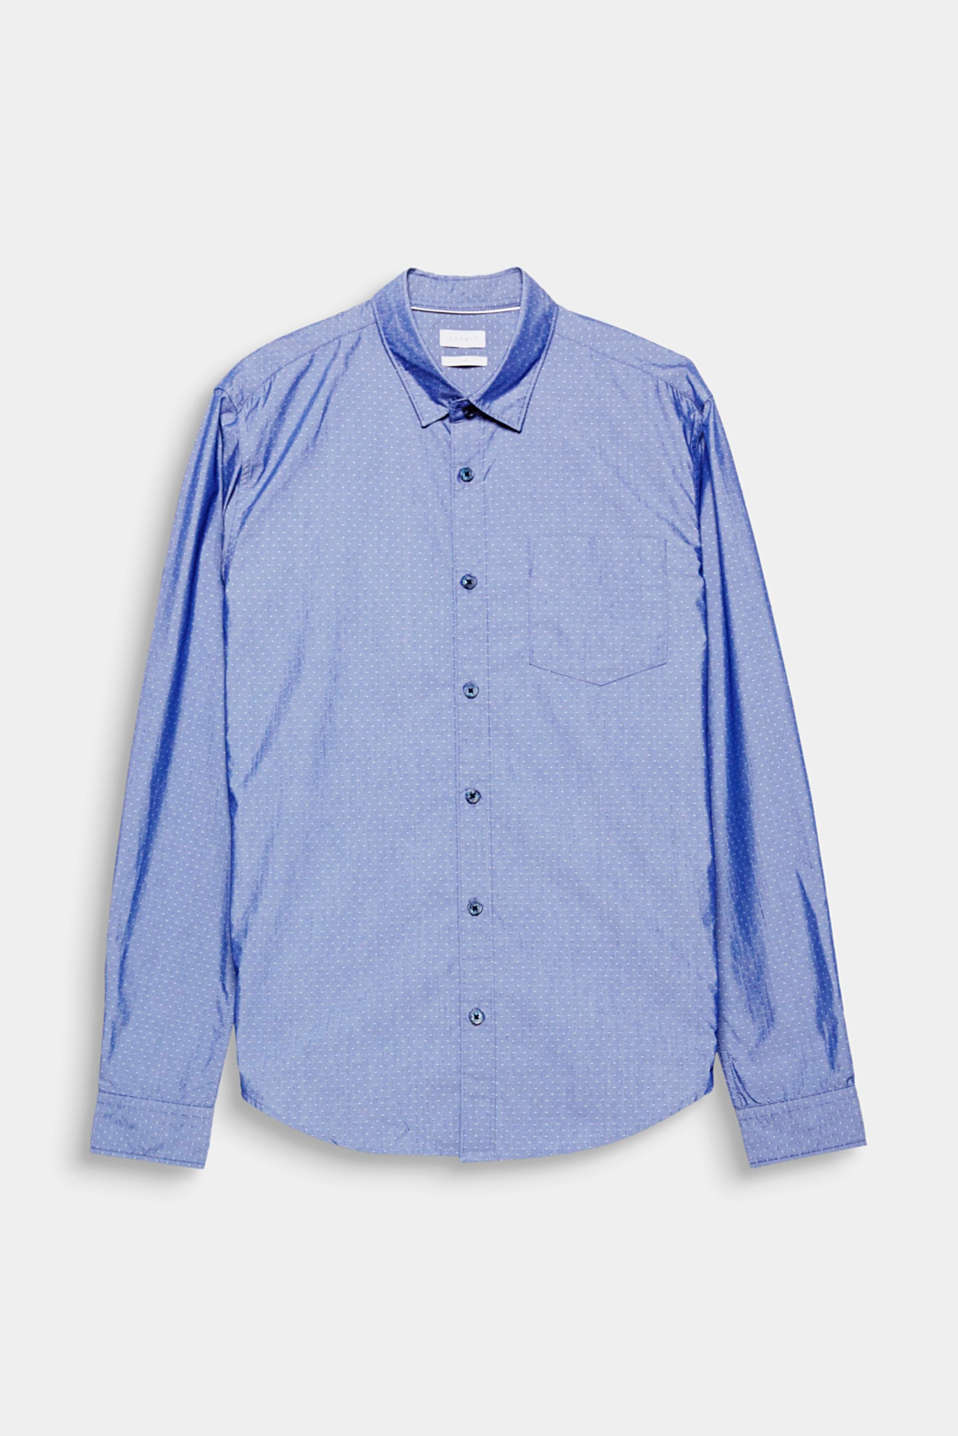 The  COOLMAX® technology makes this chambray shirt pleasantly cool no matter what the weather.